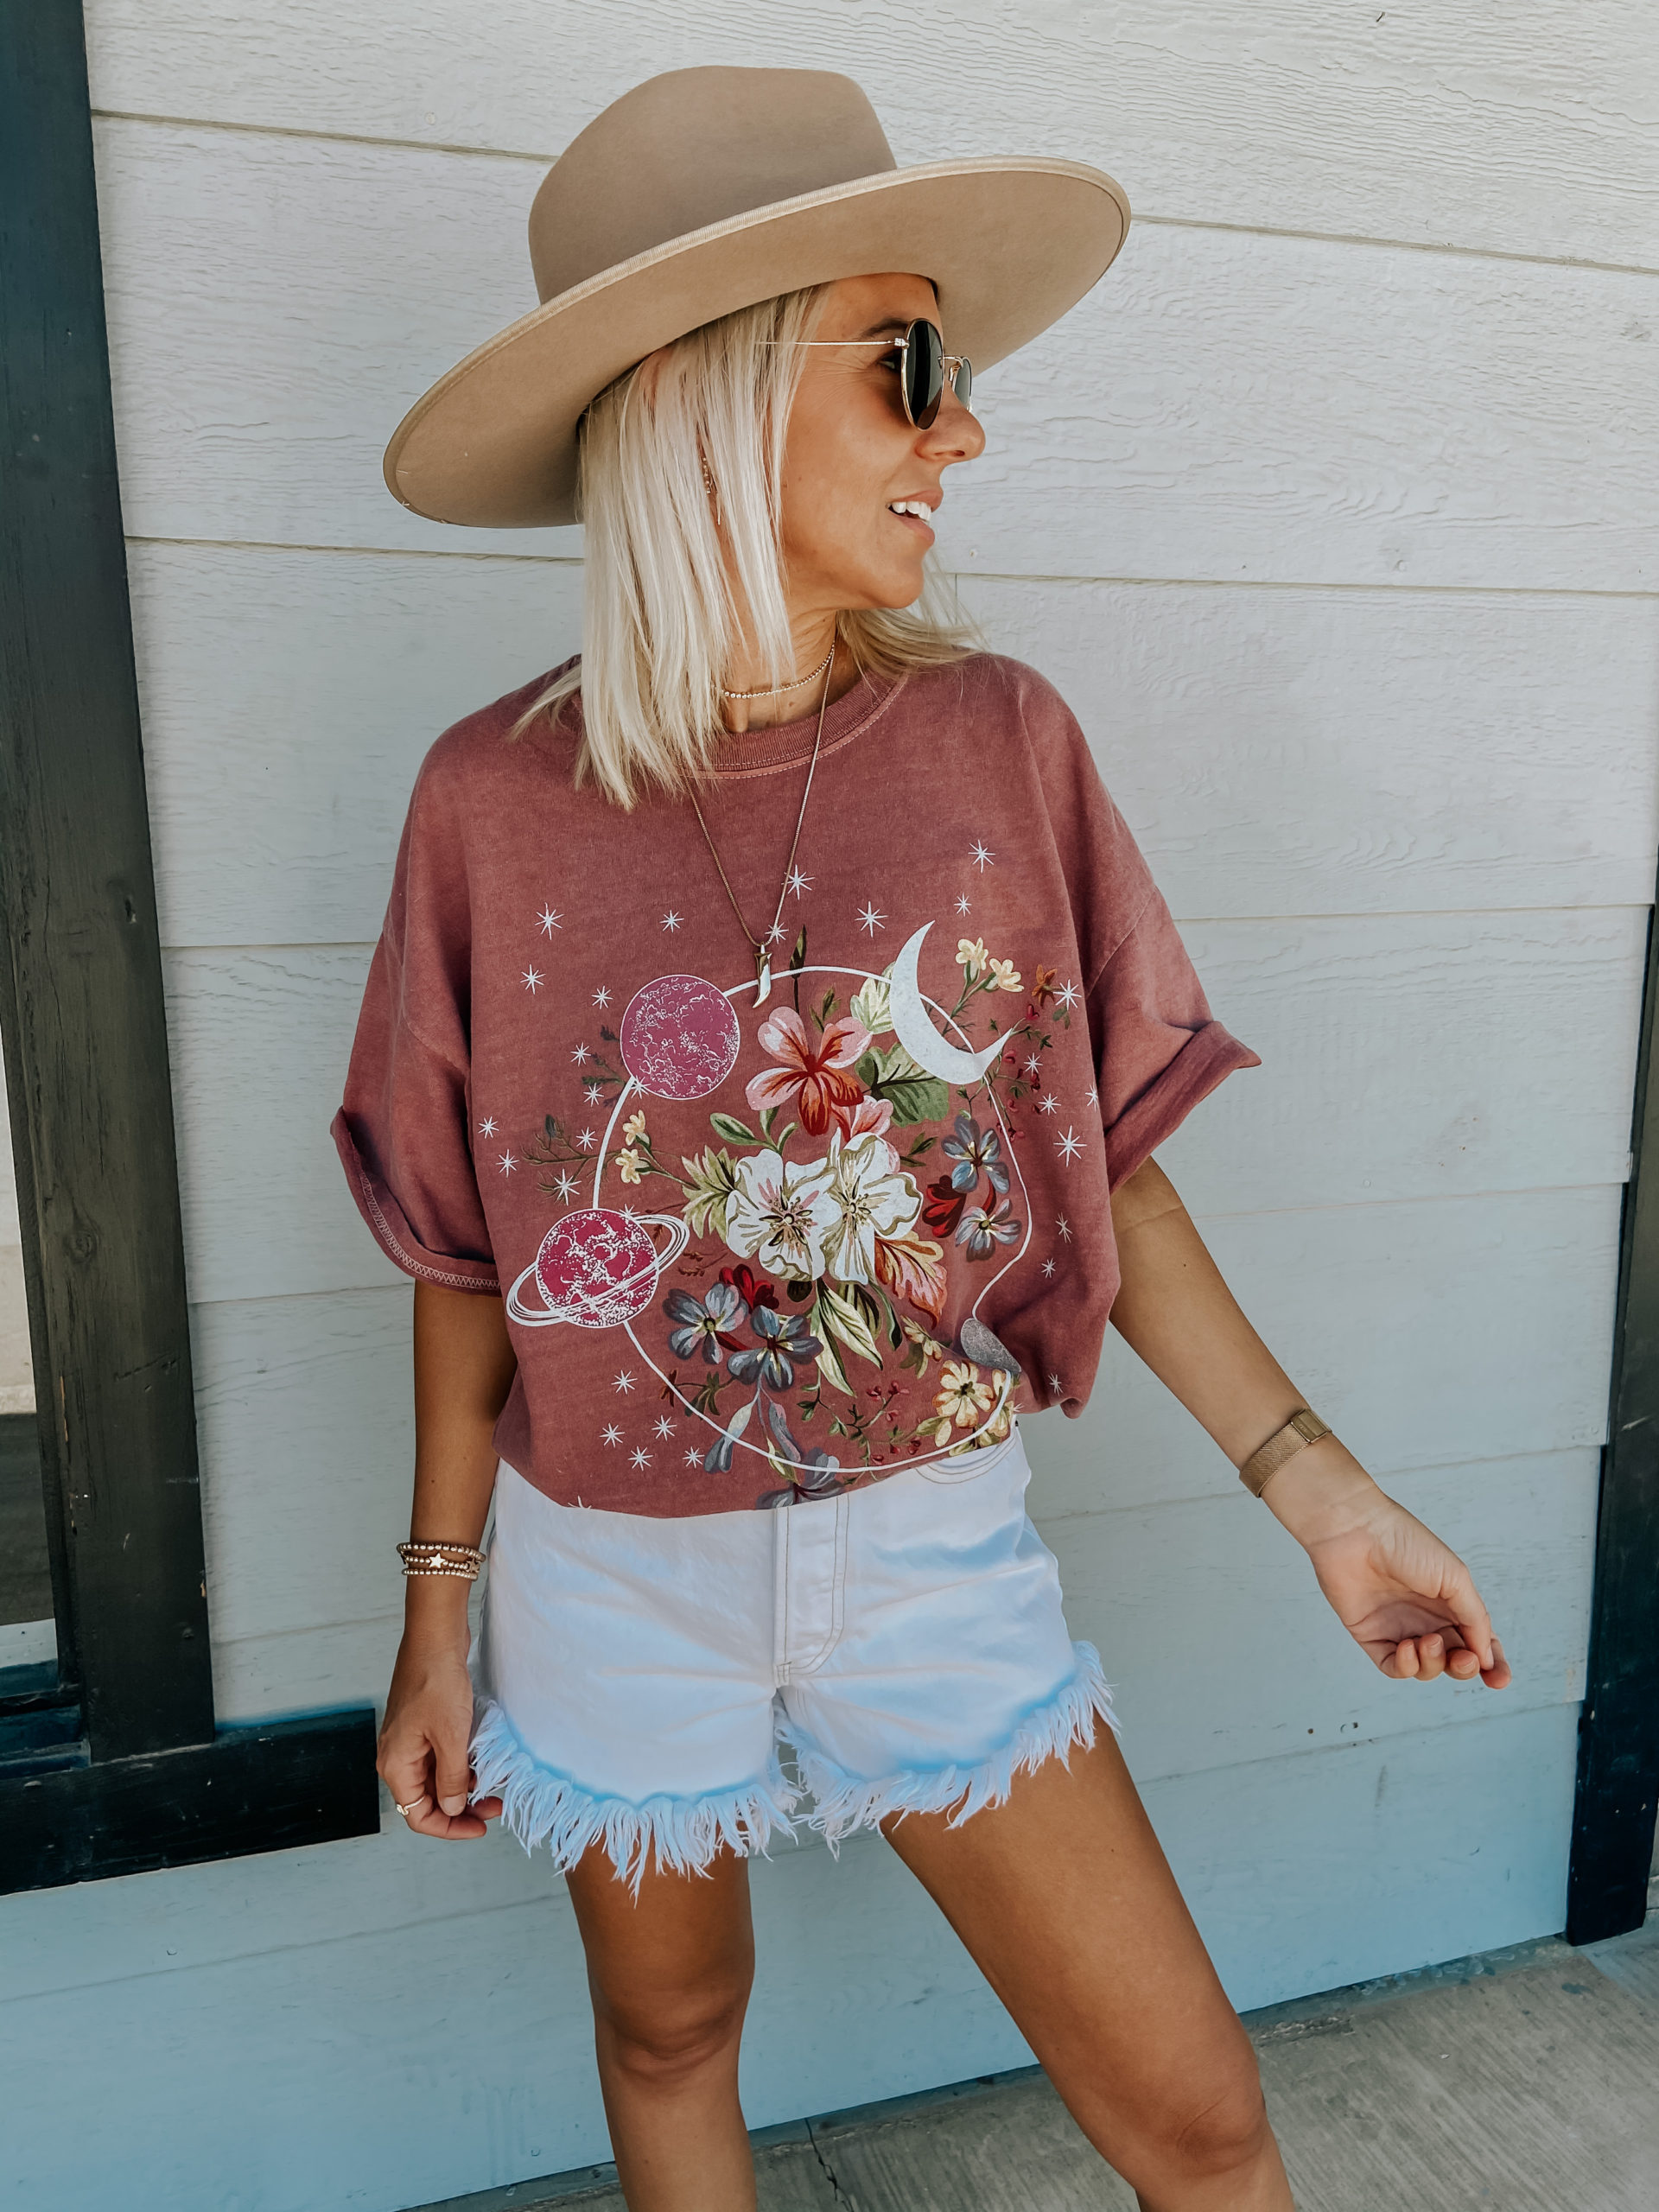 STYLING OVERSIZED GRAPHIC TEES- Jaclyn De Leon Style+ sharing tips and tricks for styling oversized graphic tees. Pairing them with shorts, as a dress and more!